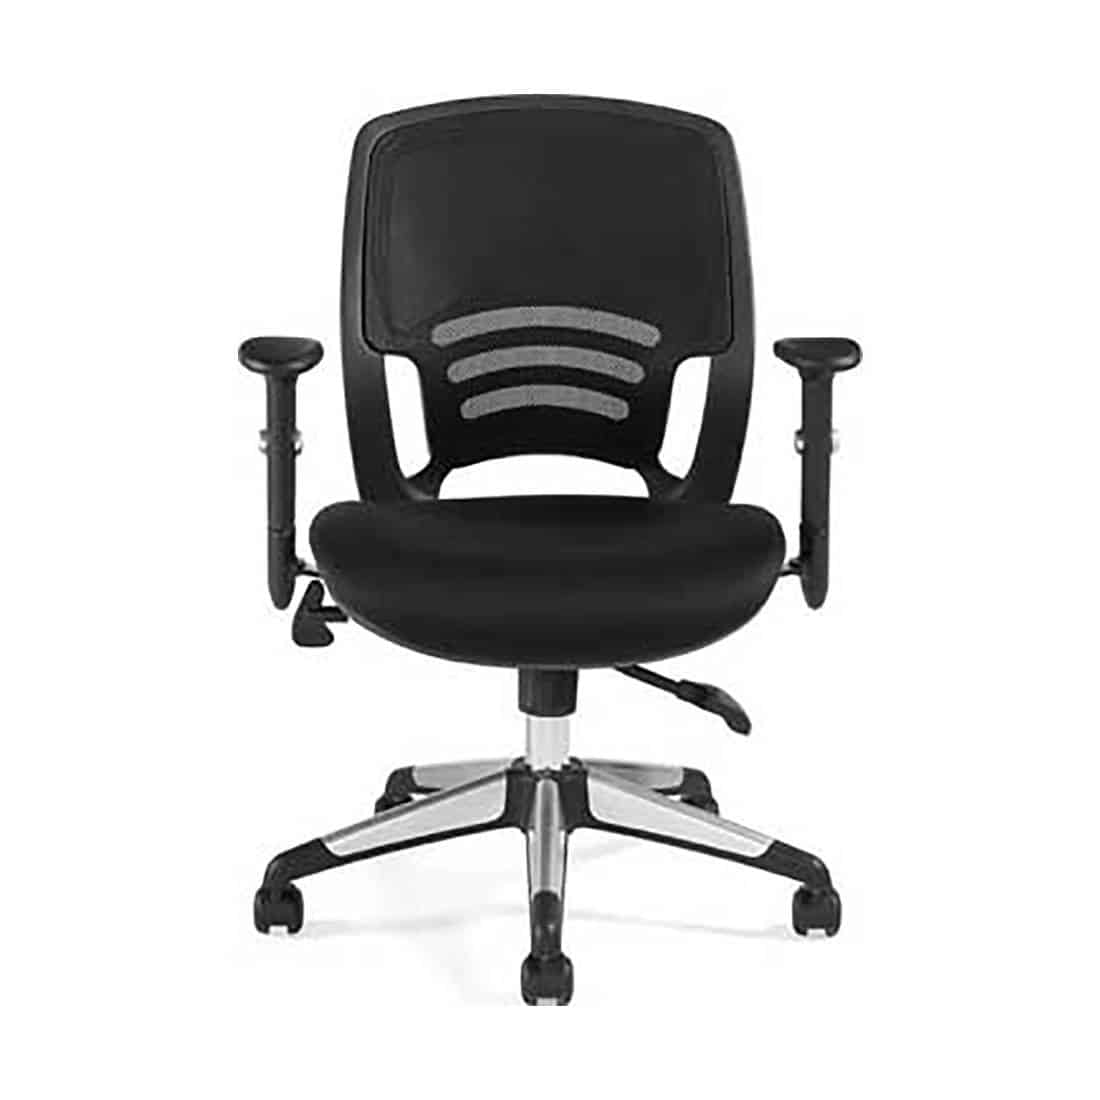 Global OTG 11686B Mesh Back Managers Chair with Adjustable Arms